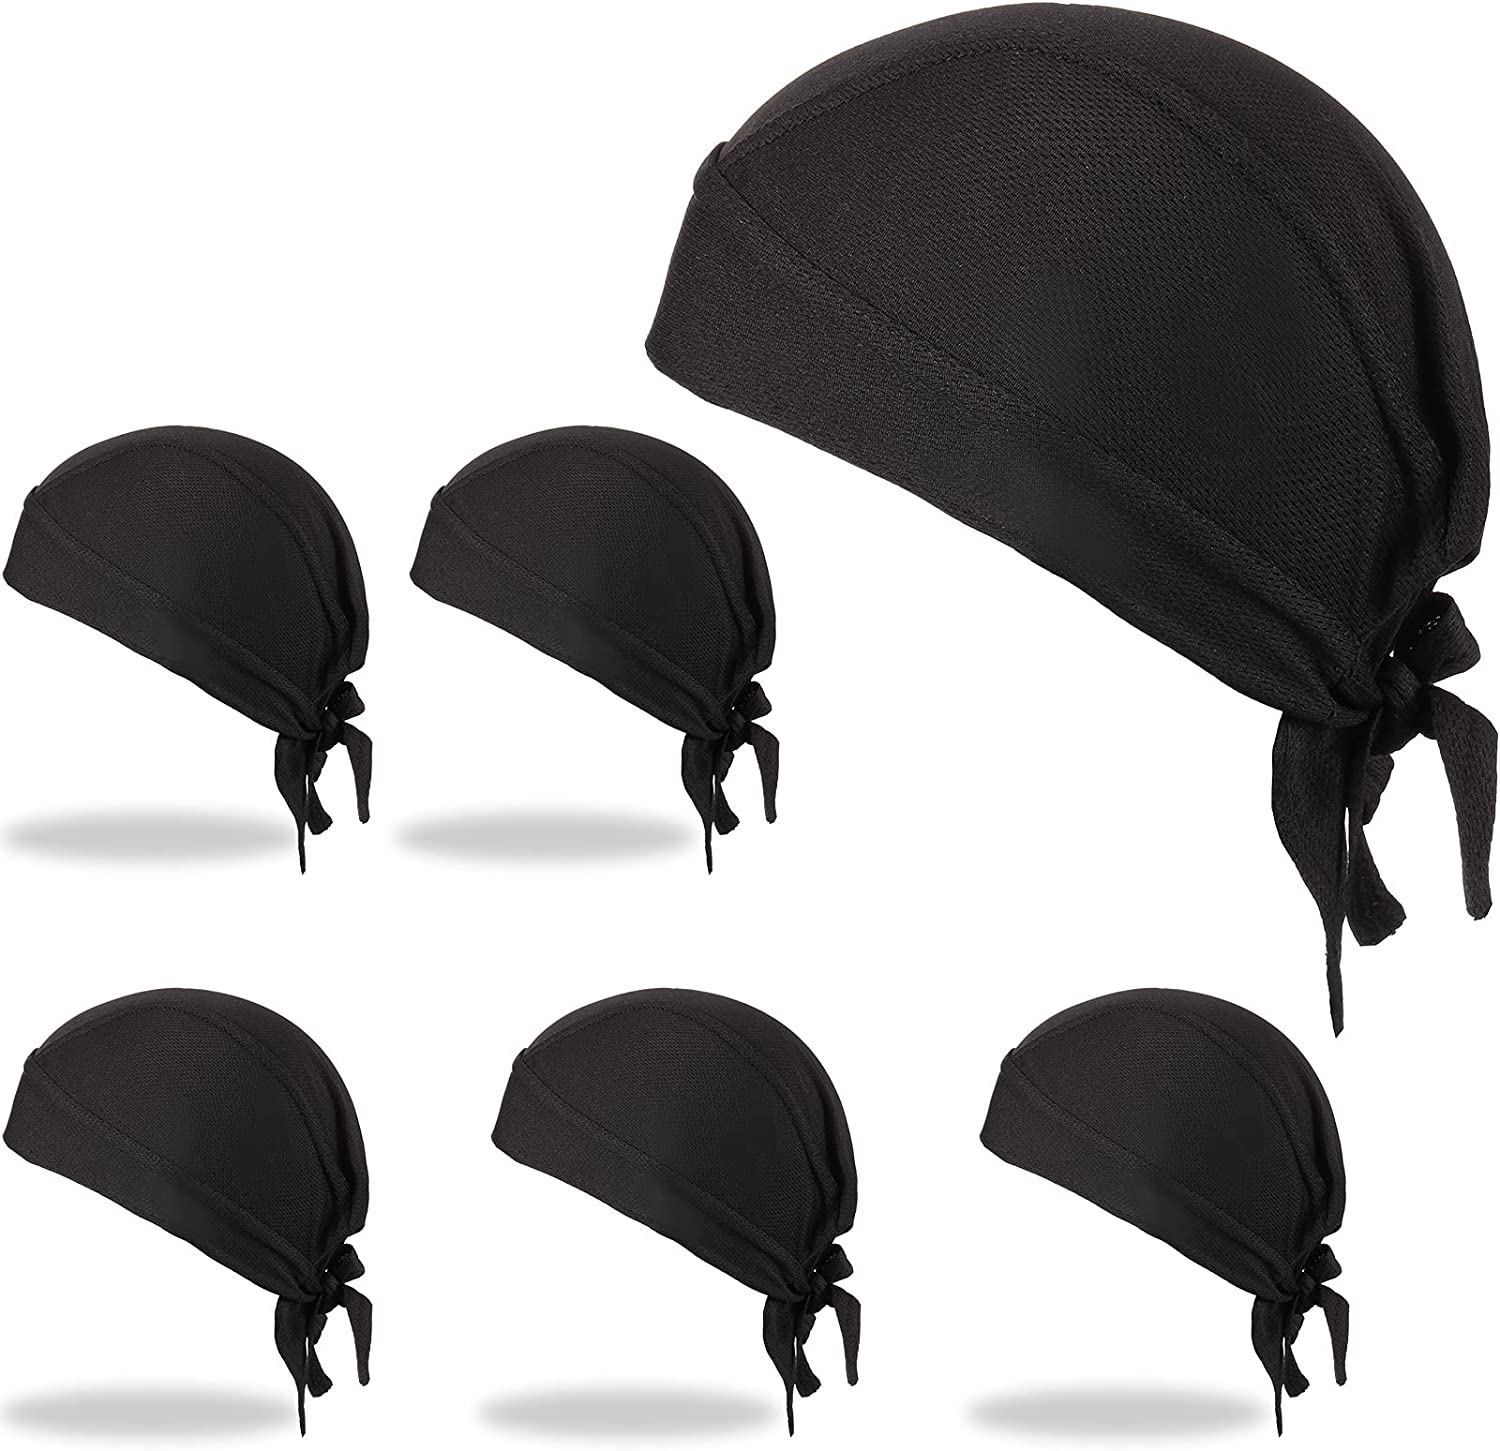 6 Ranking TOP14 Pieces New arrival Sweat Wicking Beanie Quick Skull Cap H Drying